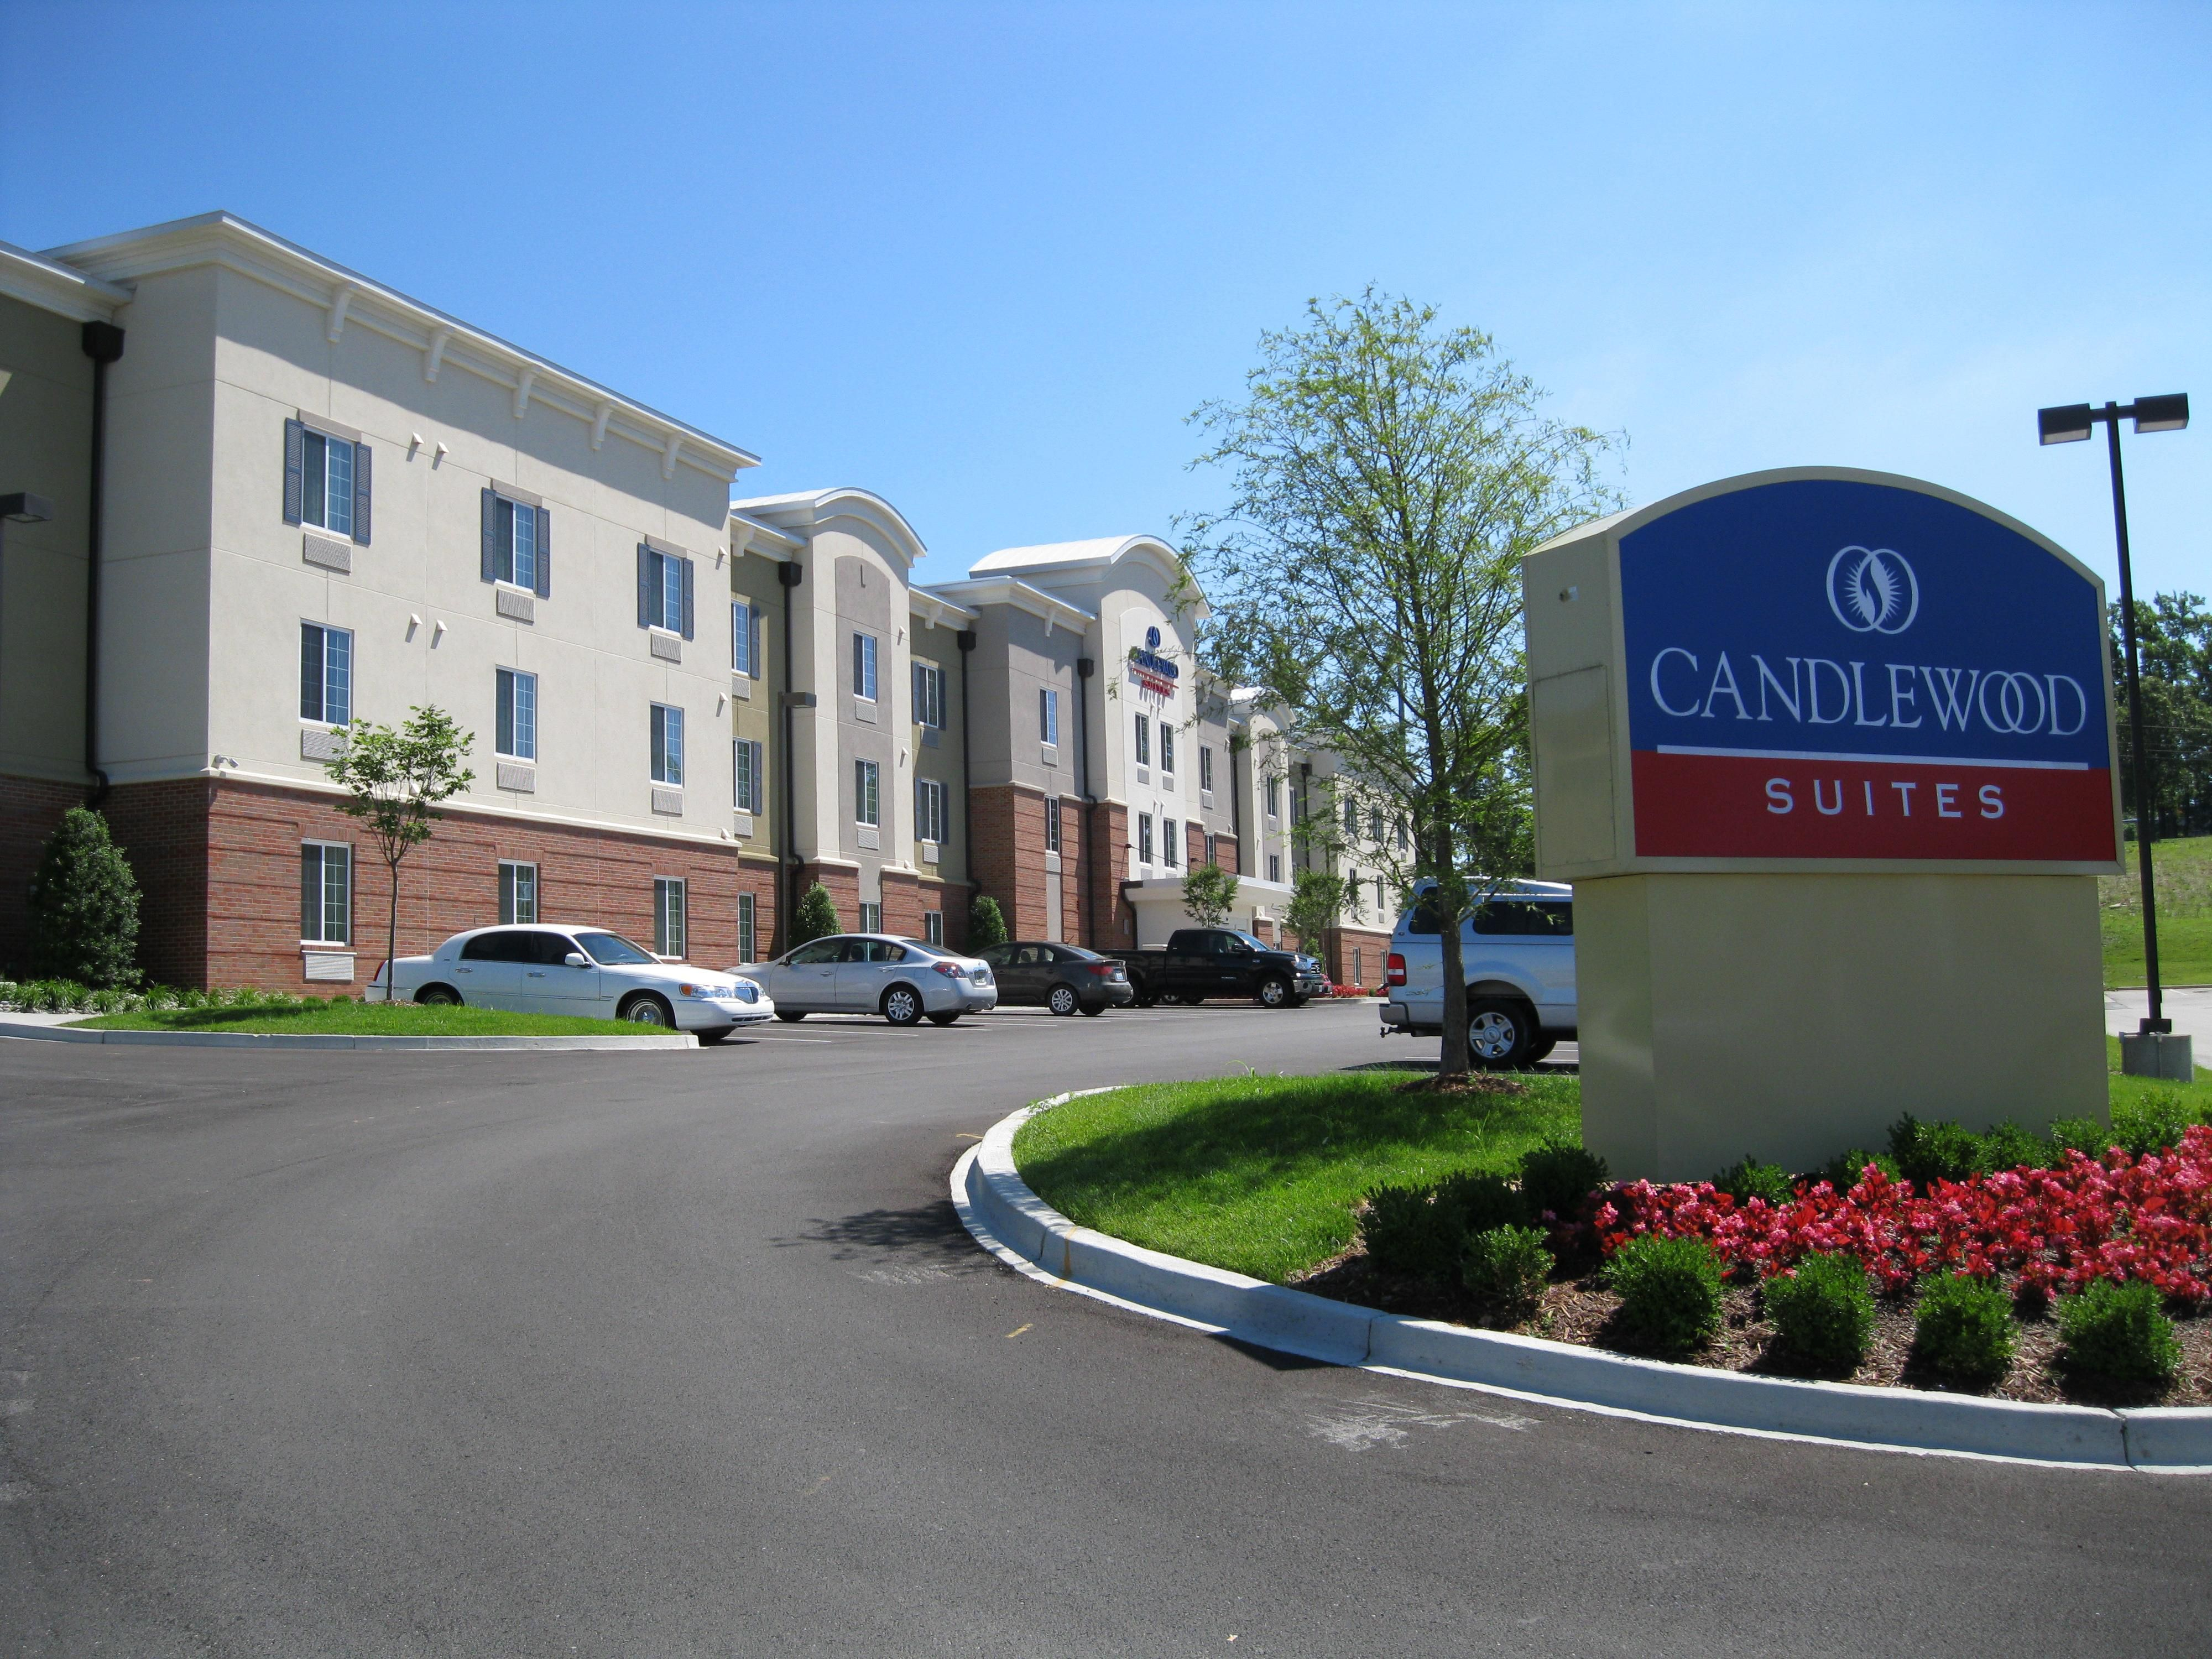 Candlewood Suites Radcliff Fort Knox